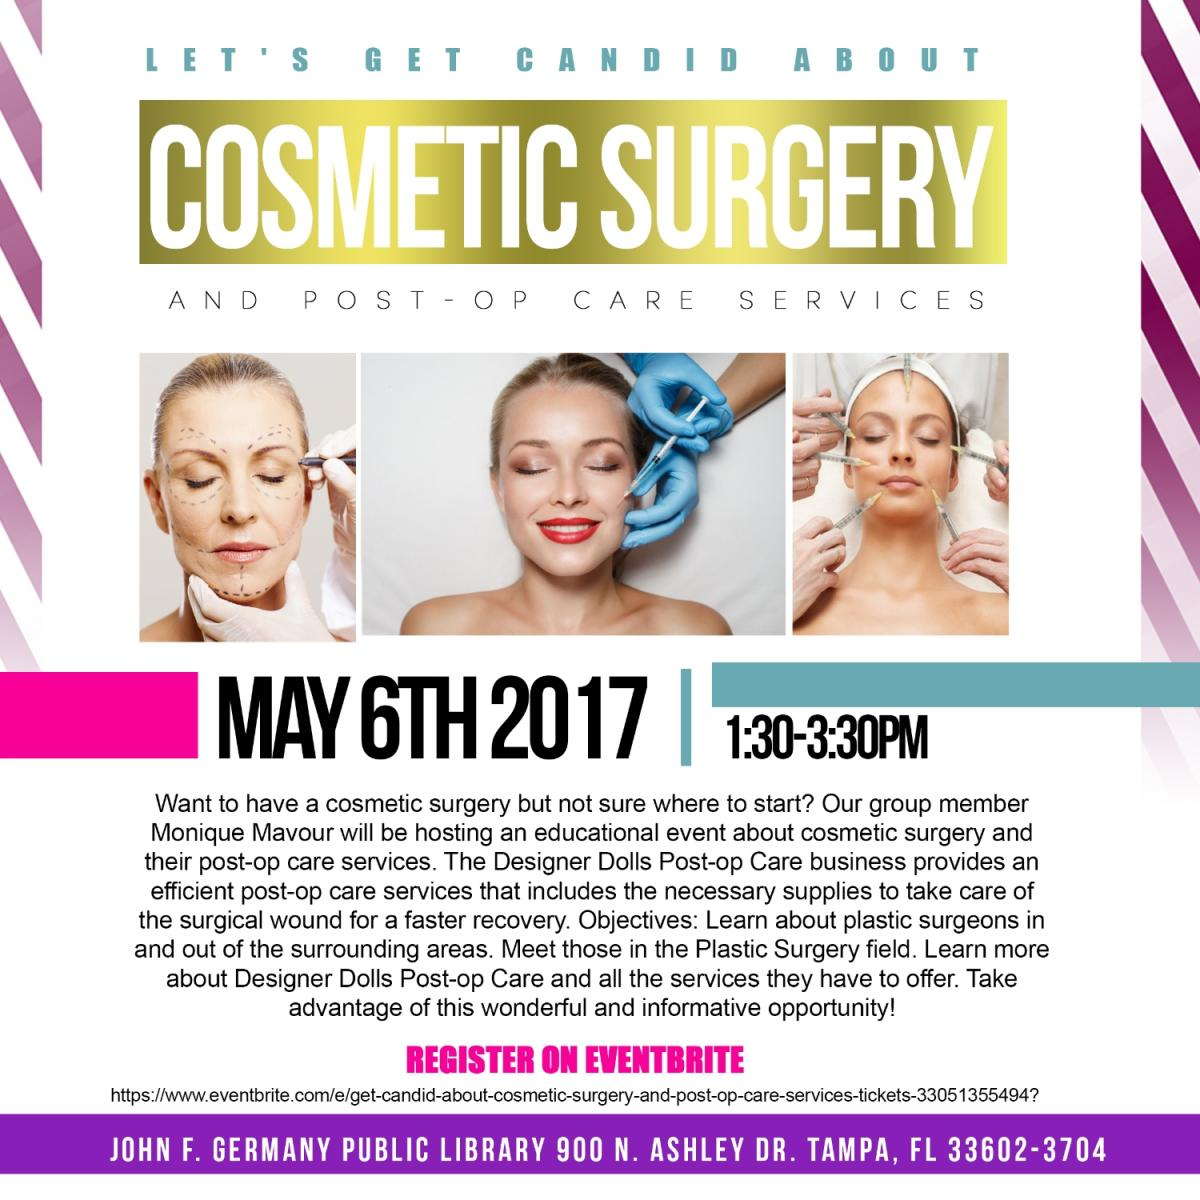 Let's Get Candid About Cosmetic Surgery and Post-op Care Services